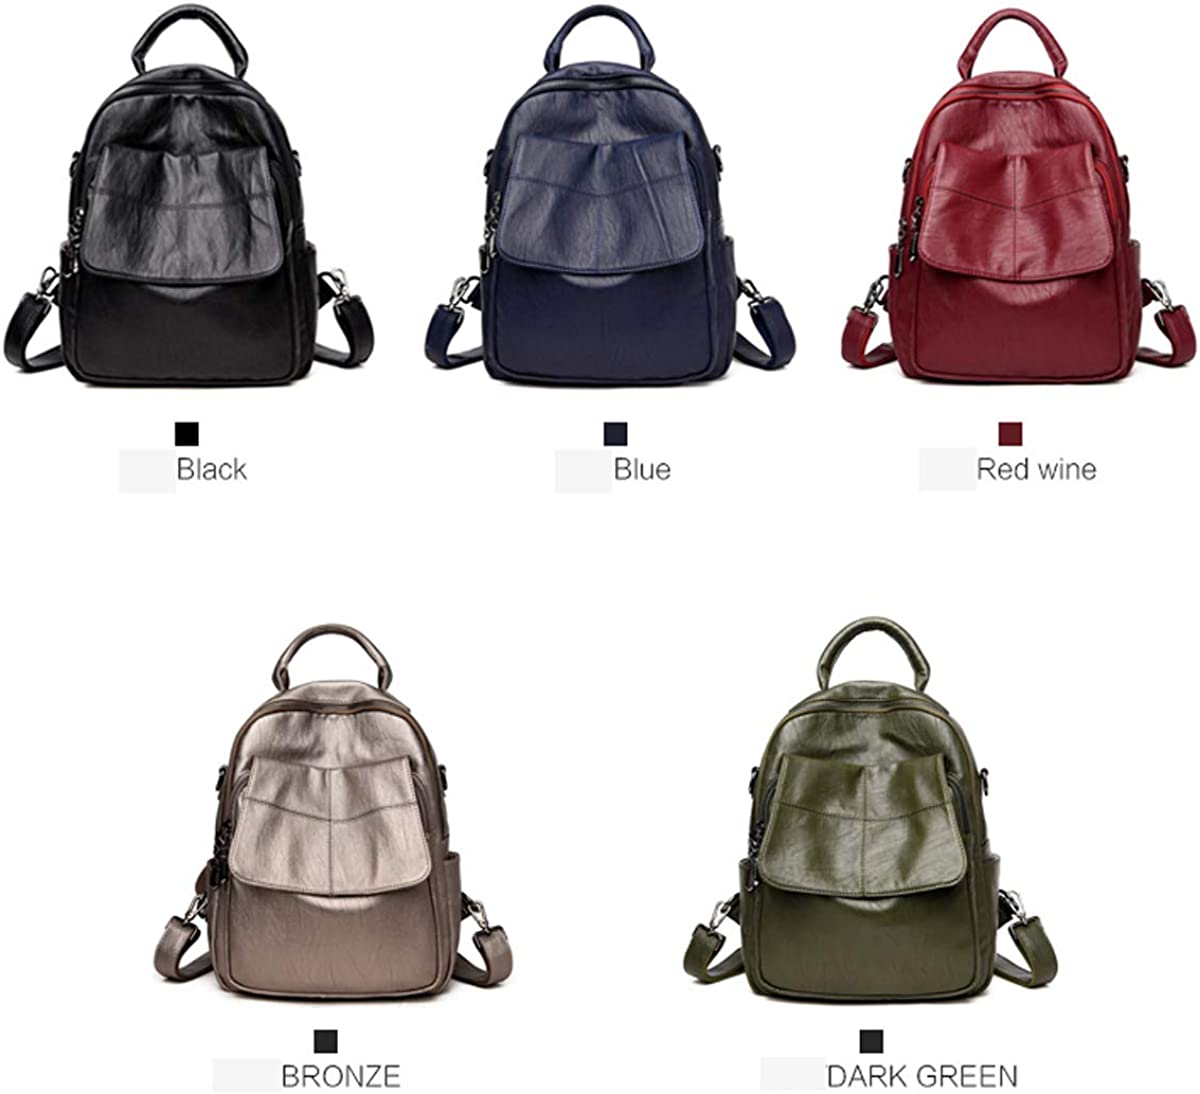 for Women /& Men Generous and Simple Five Colors ZHICHUANG Girls Multipurpose Backpack for Daily Travel//Outdoor//Travel//School//Work//Fashion//Leisure PU Leather